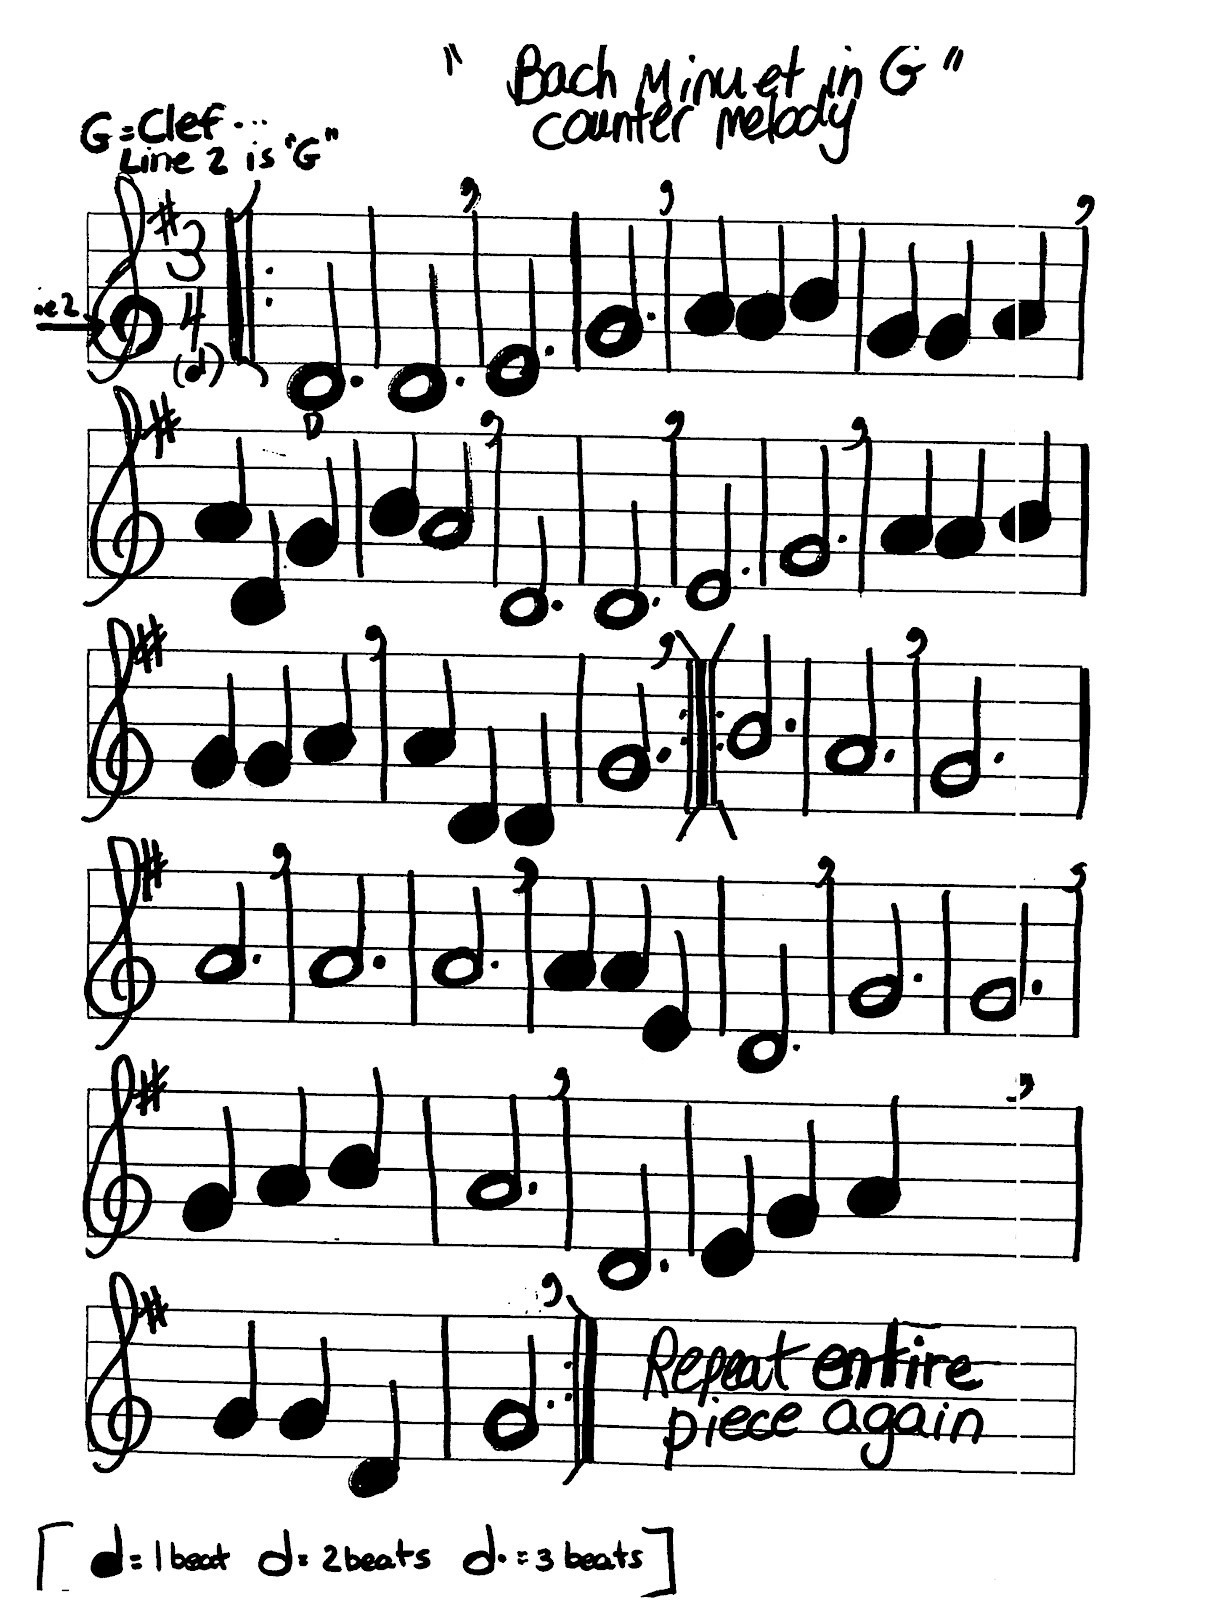 Miss Jacobson S Music Bach Minuet In G Counter Melody For Recorder Worksheet